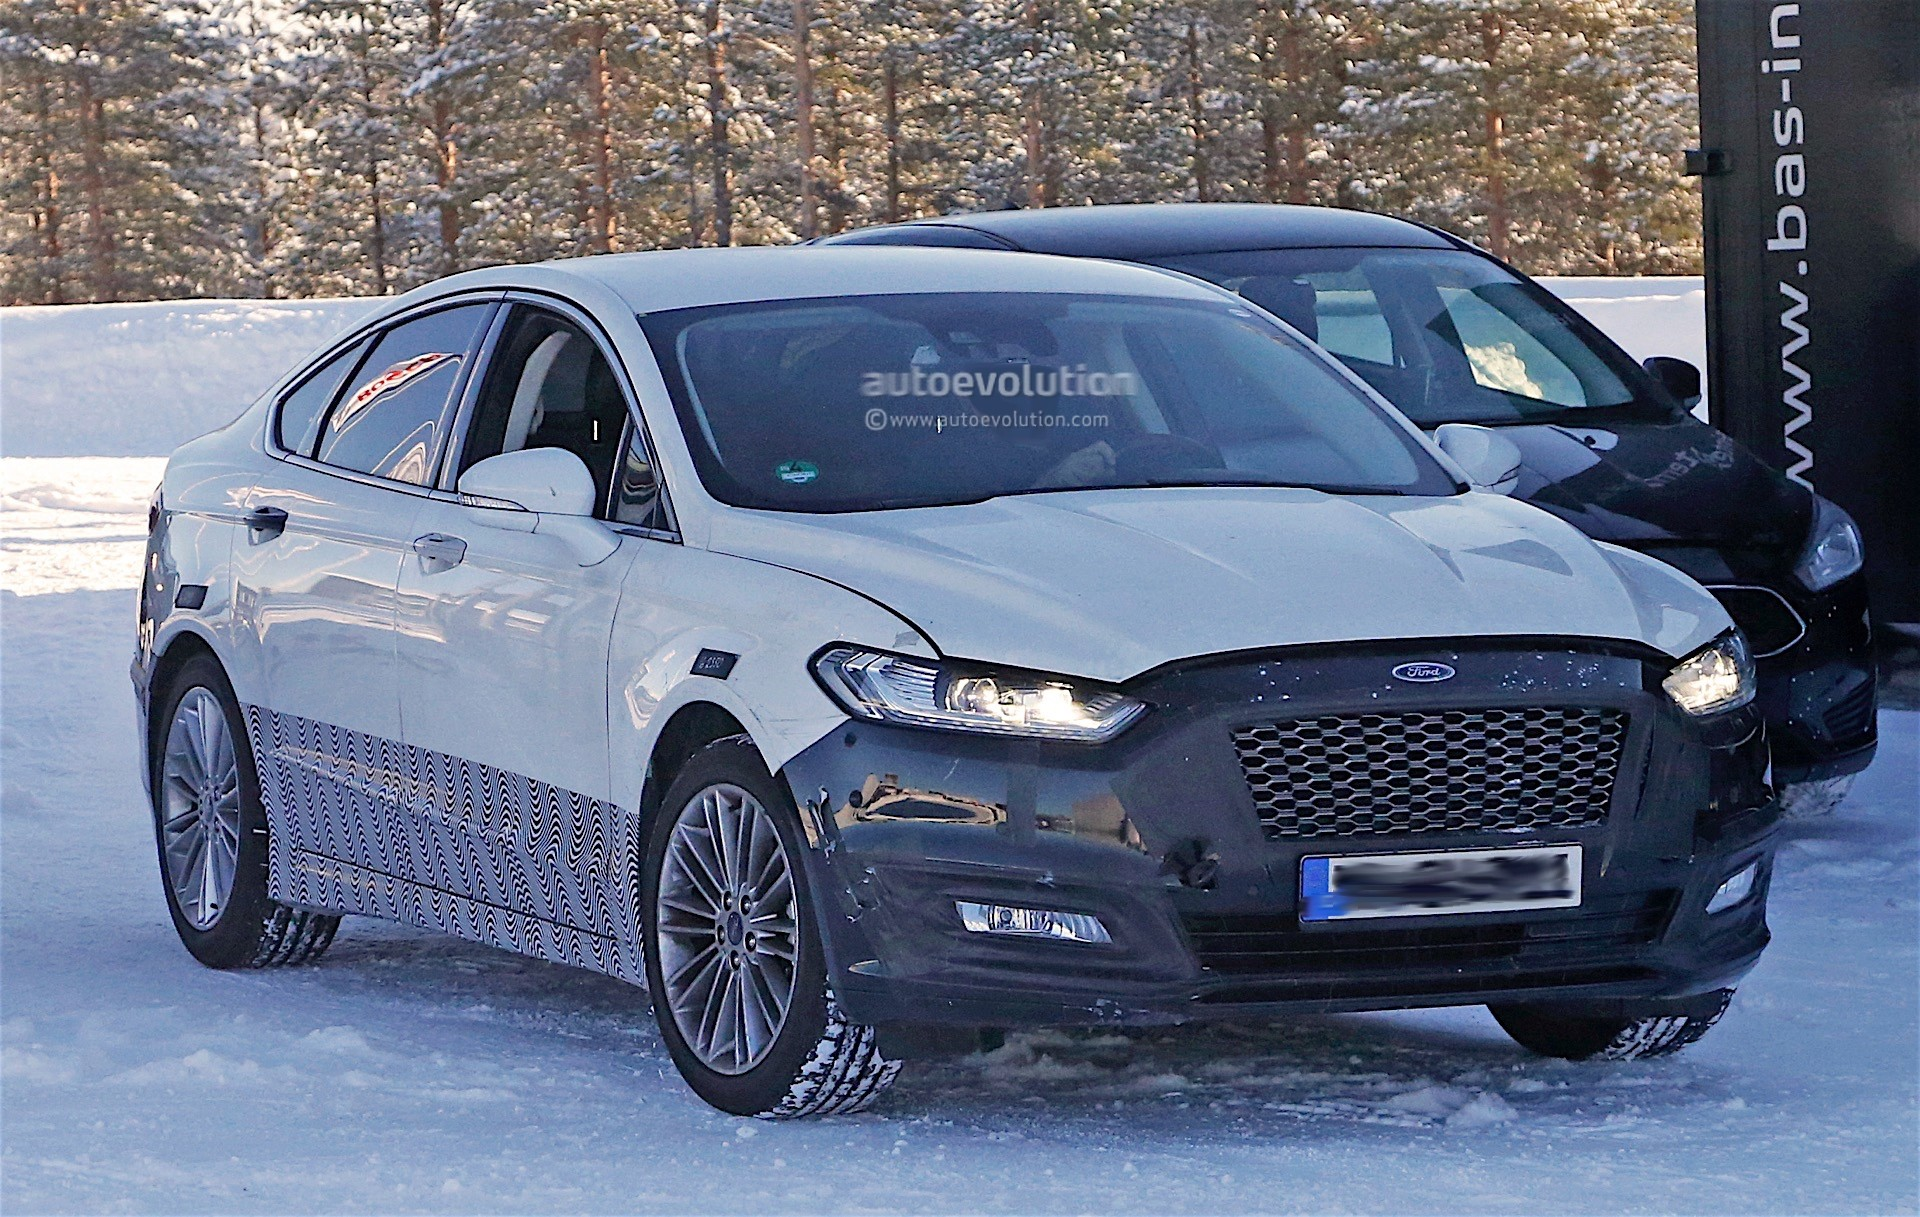 2017 ford mondeo facelift spyshots reveal refreshed lights and bumpers autoevolution. Black Bedroom Furniture Sets. Home Design Ideas